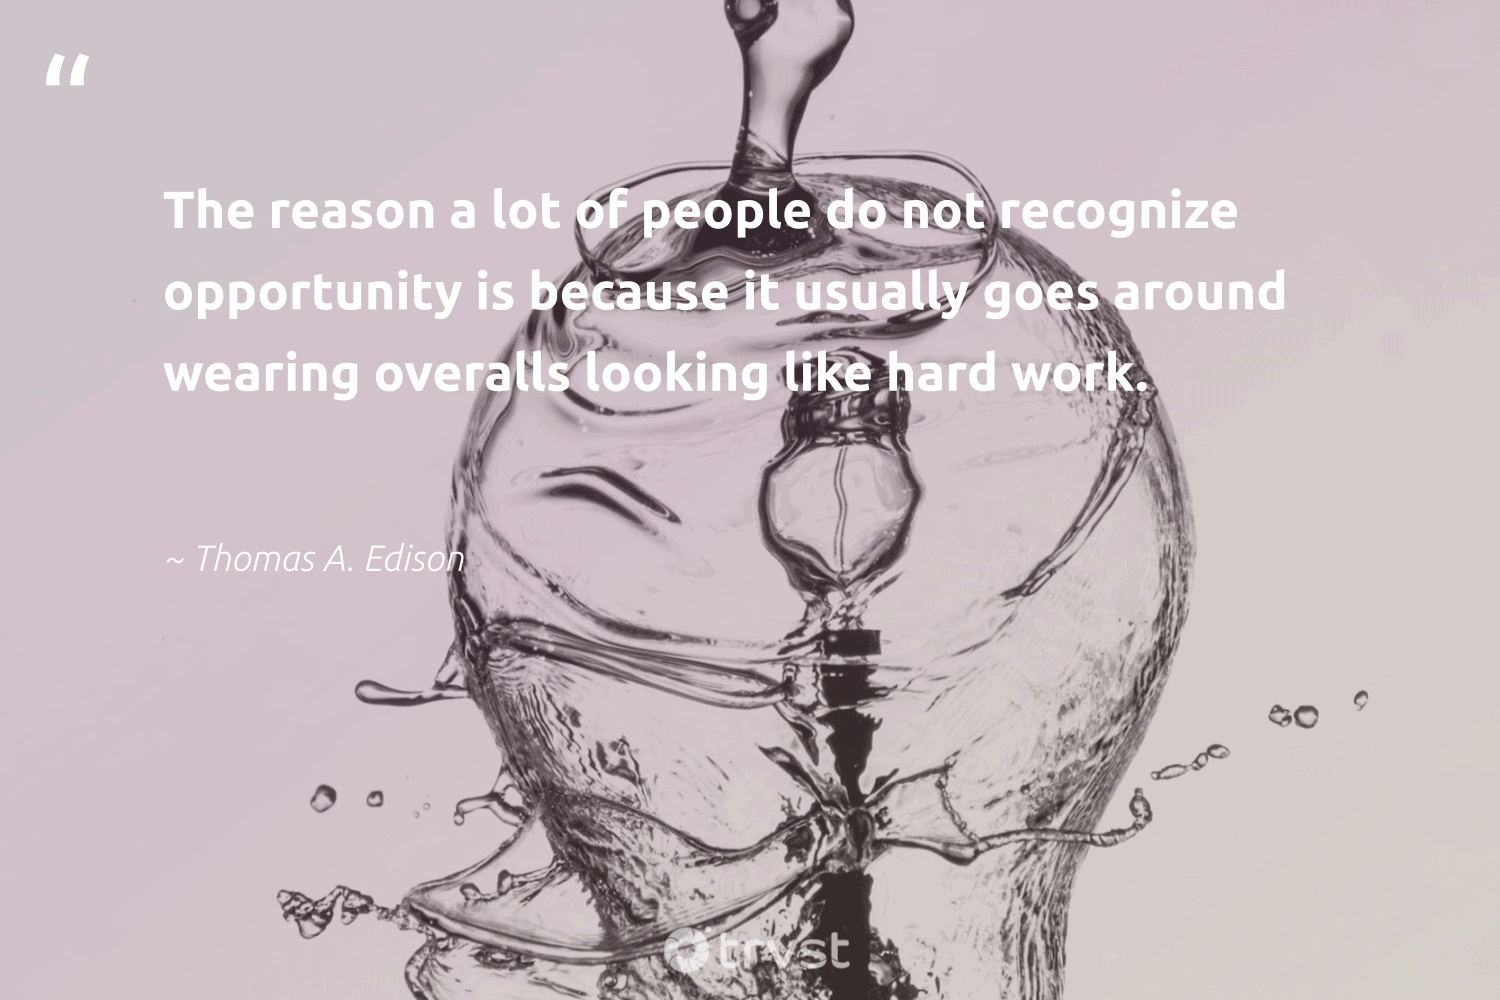 """""""The reason a lot of people do not recognize opportunity is because it usually goes around wearing overalls looking like hard work.""""  - Thomas A. Edison #trvst #quotes #dogood #socialchange #makeadifference #dotherightthing #ethicalbusiness #bethechange #betterplanet #beinspired #weareallone #collectiveaction"""